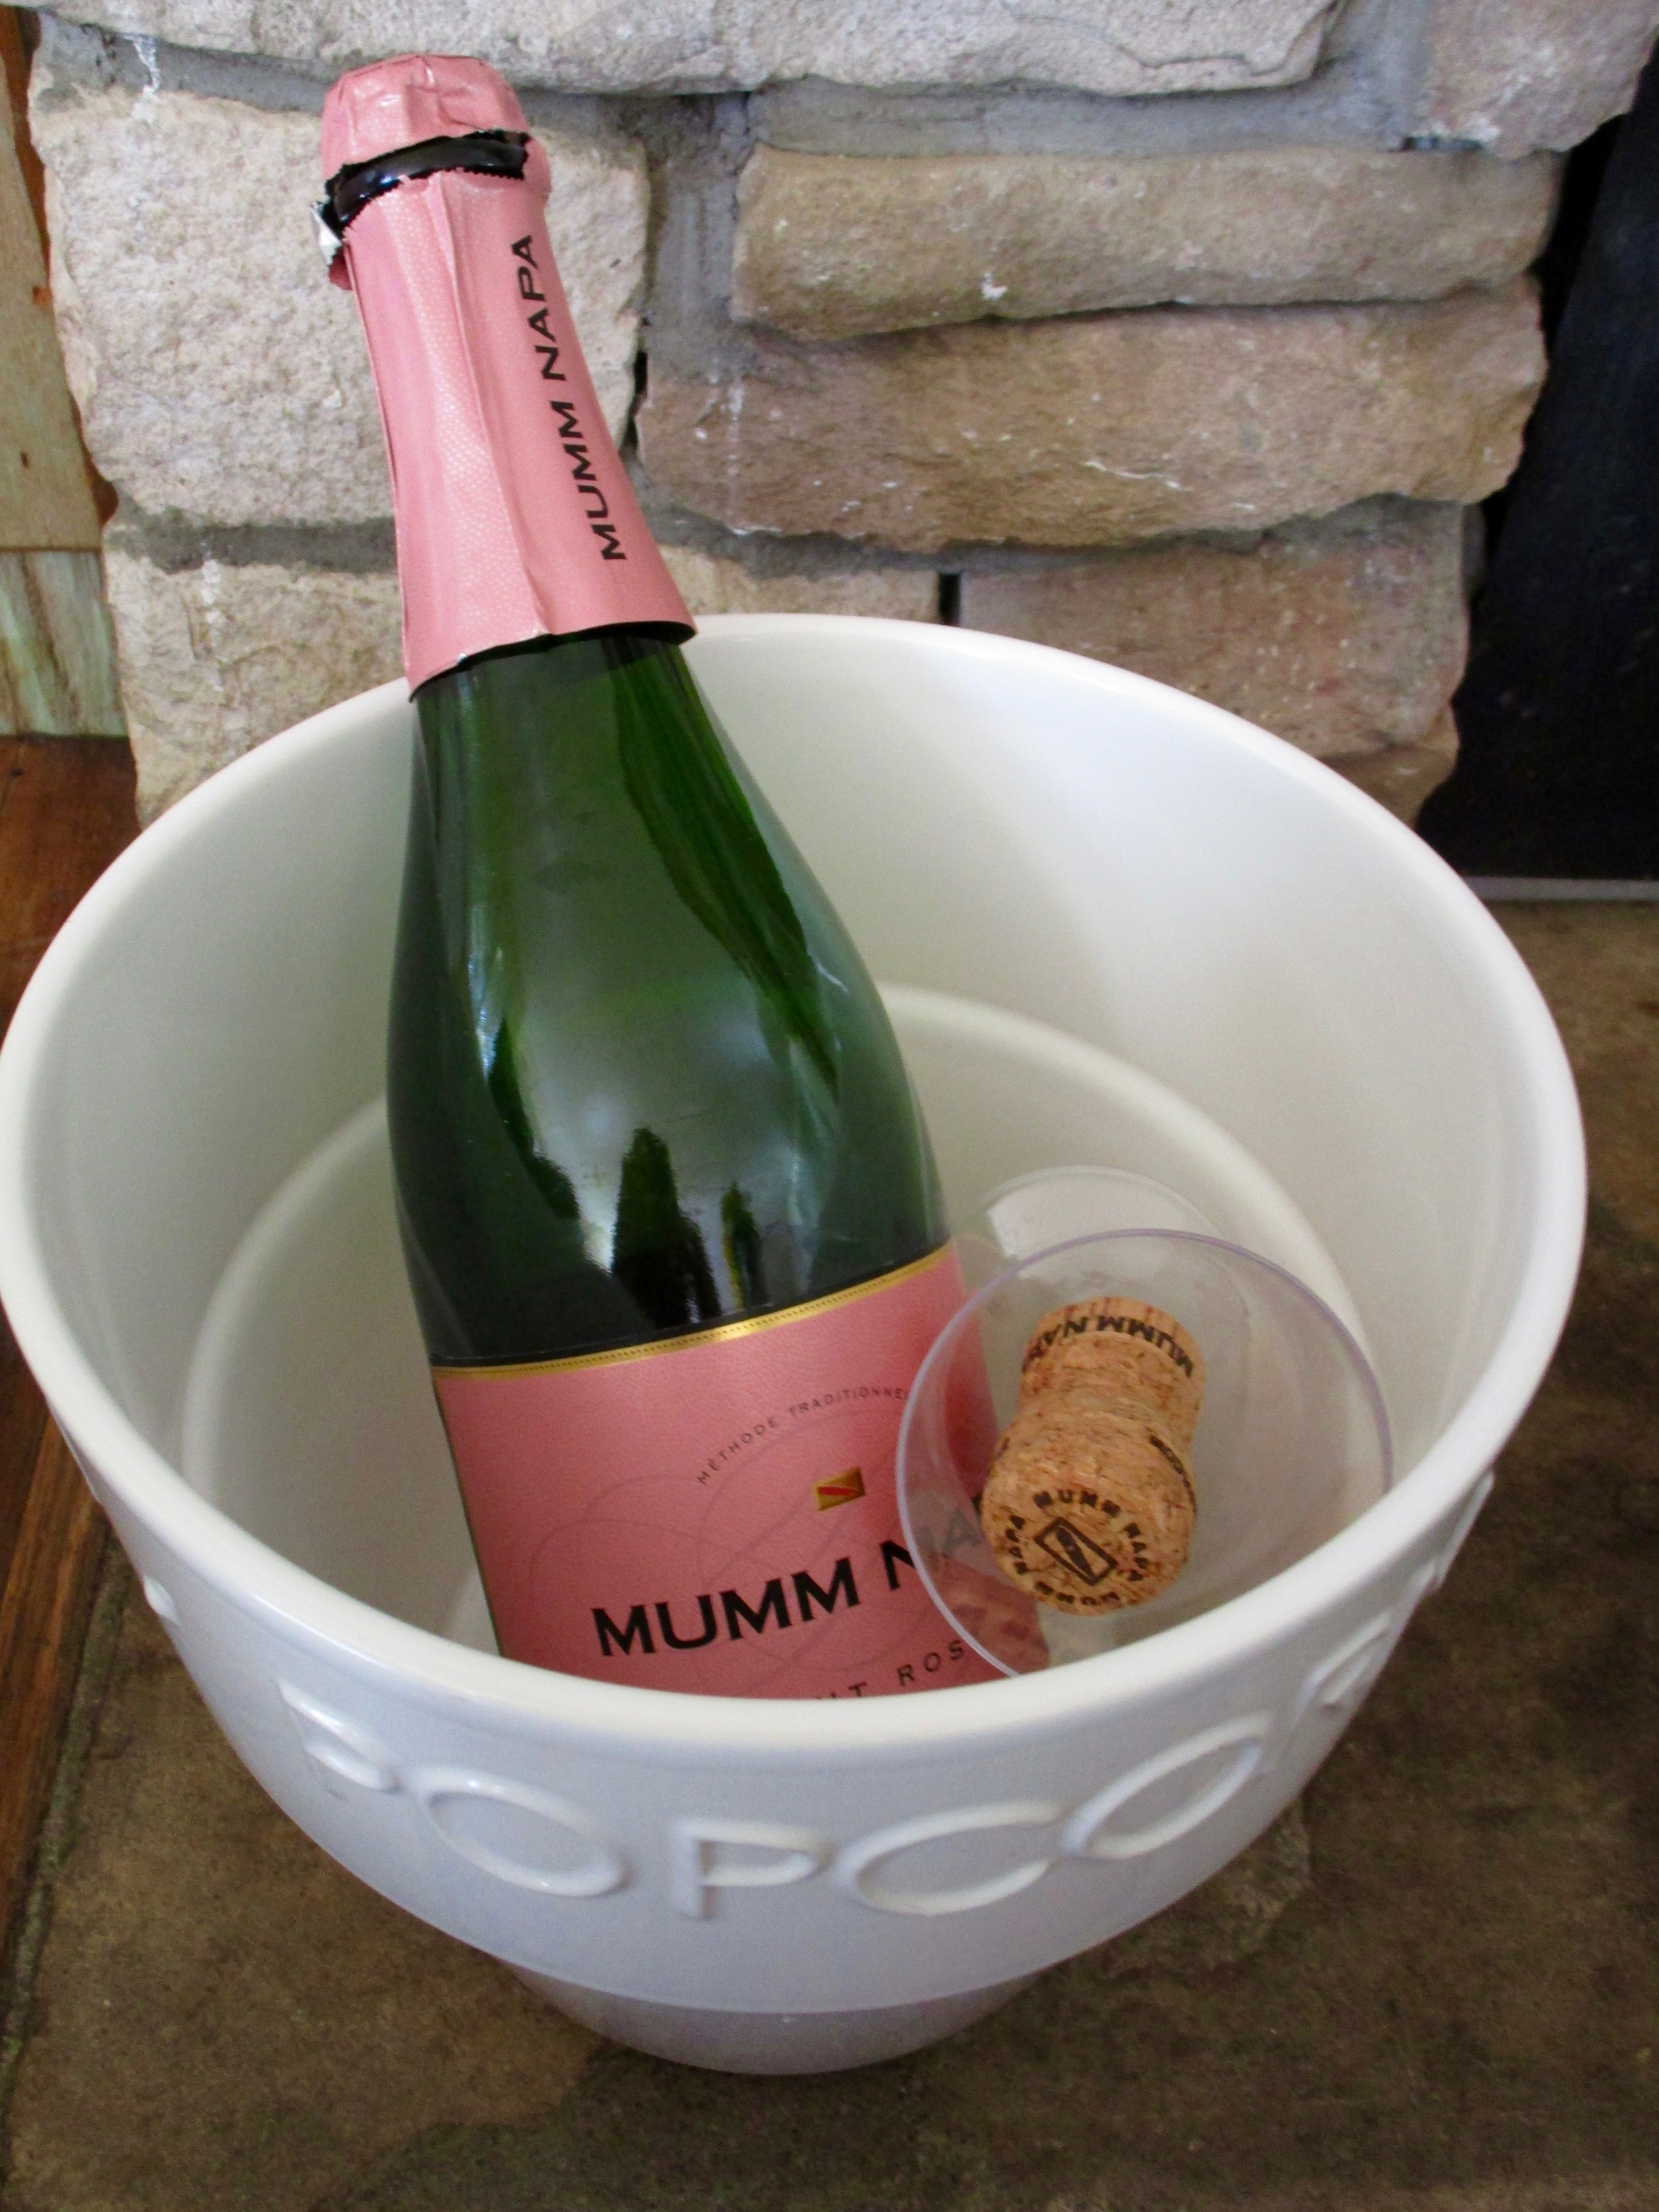 After buying 3 bags of ice, I was able to keep the  champagne very comfy in it's popcorn bowl container.